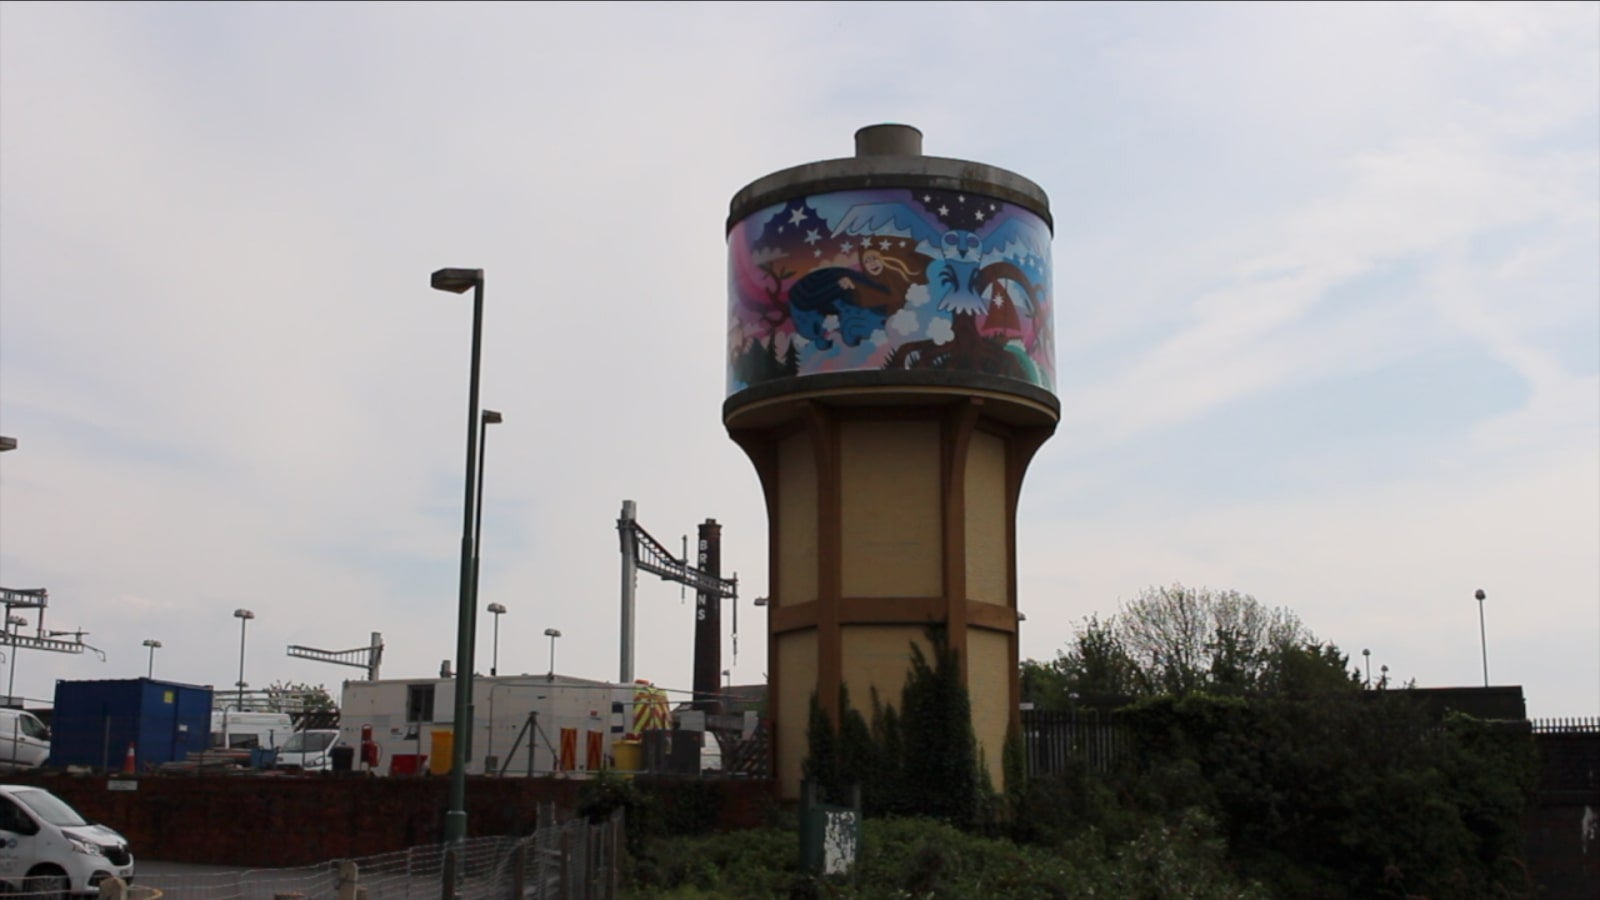 Weird and Wonderful Wales Water Tower Mural, Cardiff